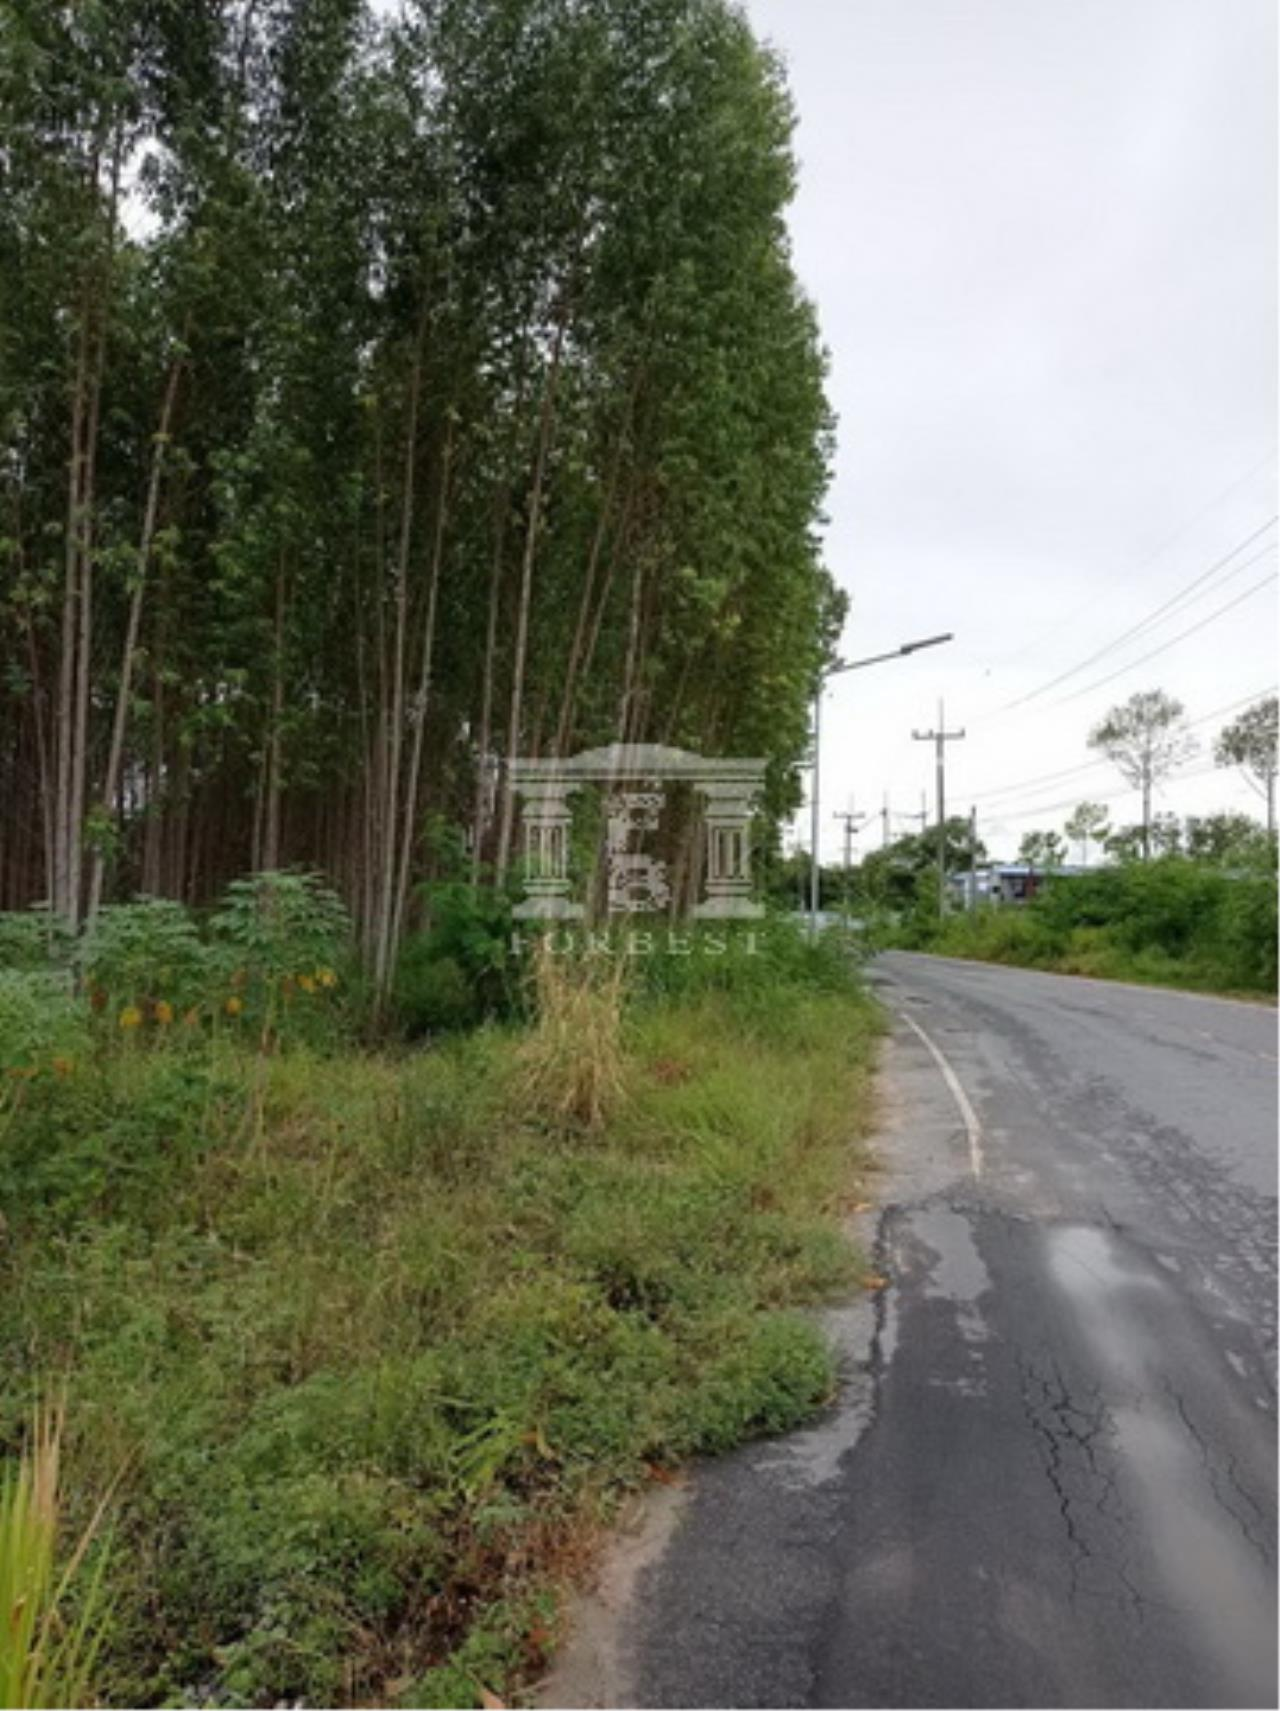 Forbest Properties Agency's 90180 - Land for sale, Plot size 60-1-78.8 Rai, Ban Chang, Rayong, near Map Ta Phut Industrial Estate. 3